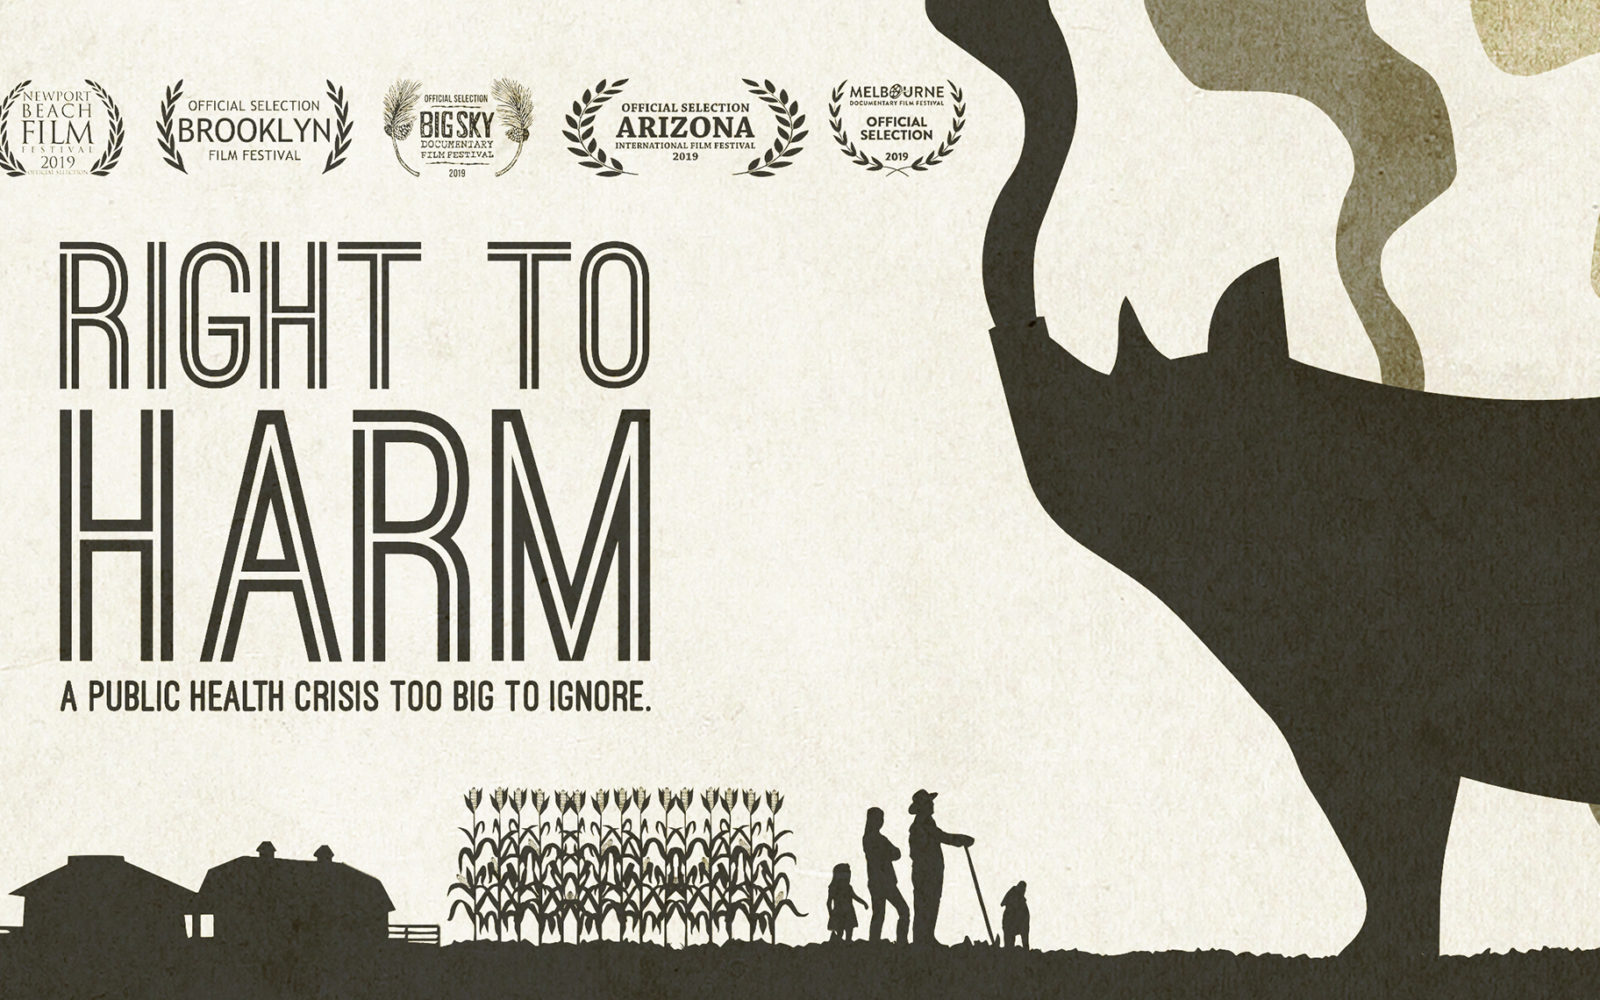 banner art for the film Right to Harm